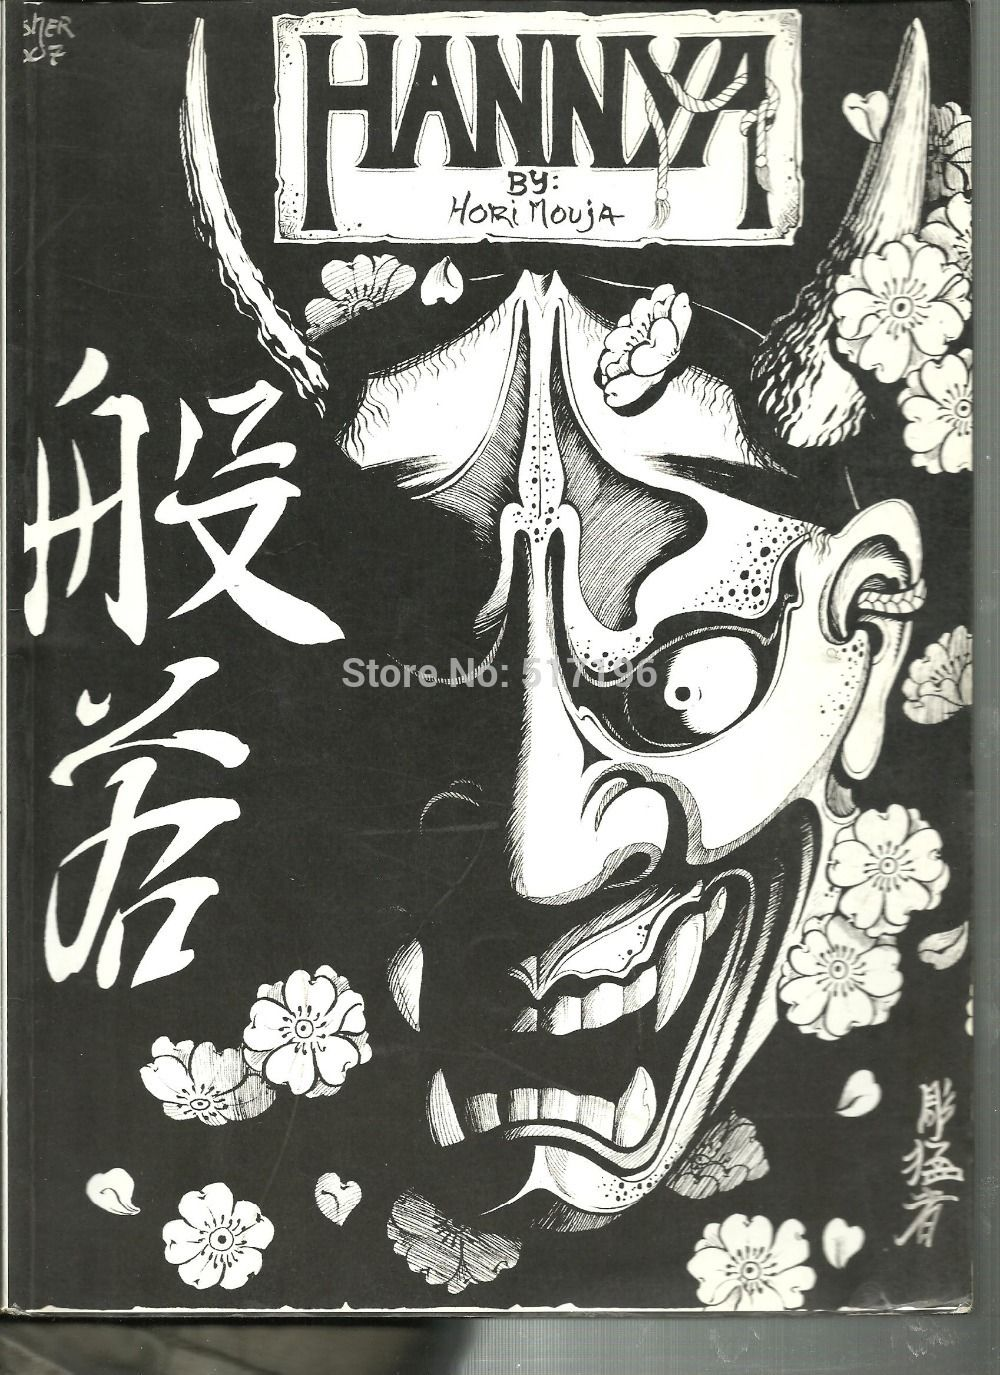 Flash Book Software Picture More Detailed Picture About Pdf Format Tattoo Book Hannya Tattoo Flash Book By Horimouja Tattoo Designs Book Tattoo Japon Tatuajes